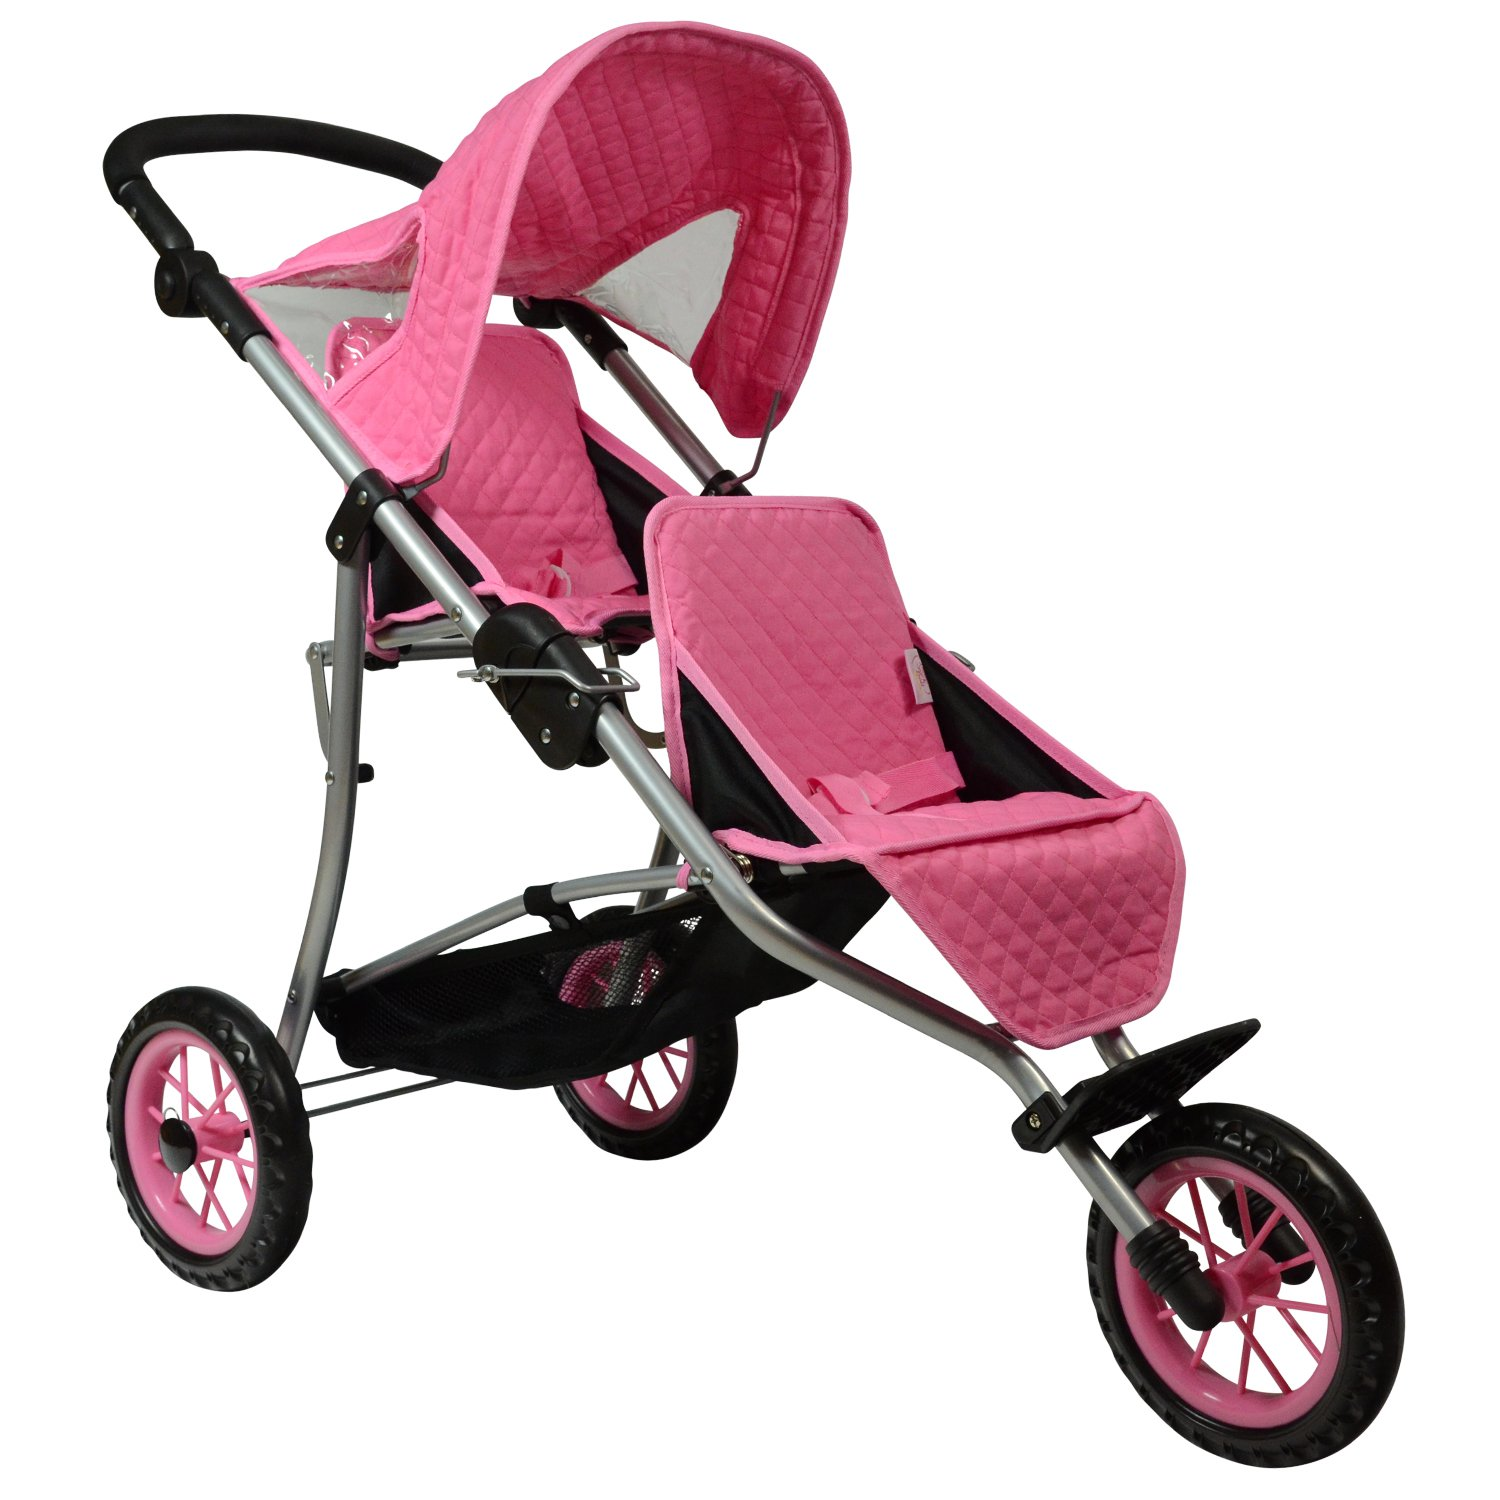 The New York Doll Collection Twin Jogging Stroller fits for 18 Inch Dolls, Pink Color, Adjustable Height